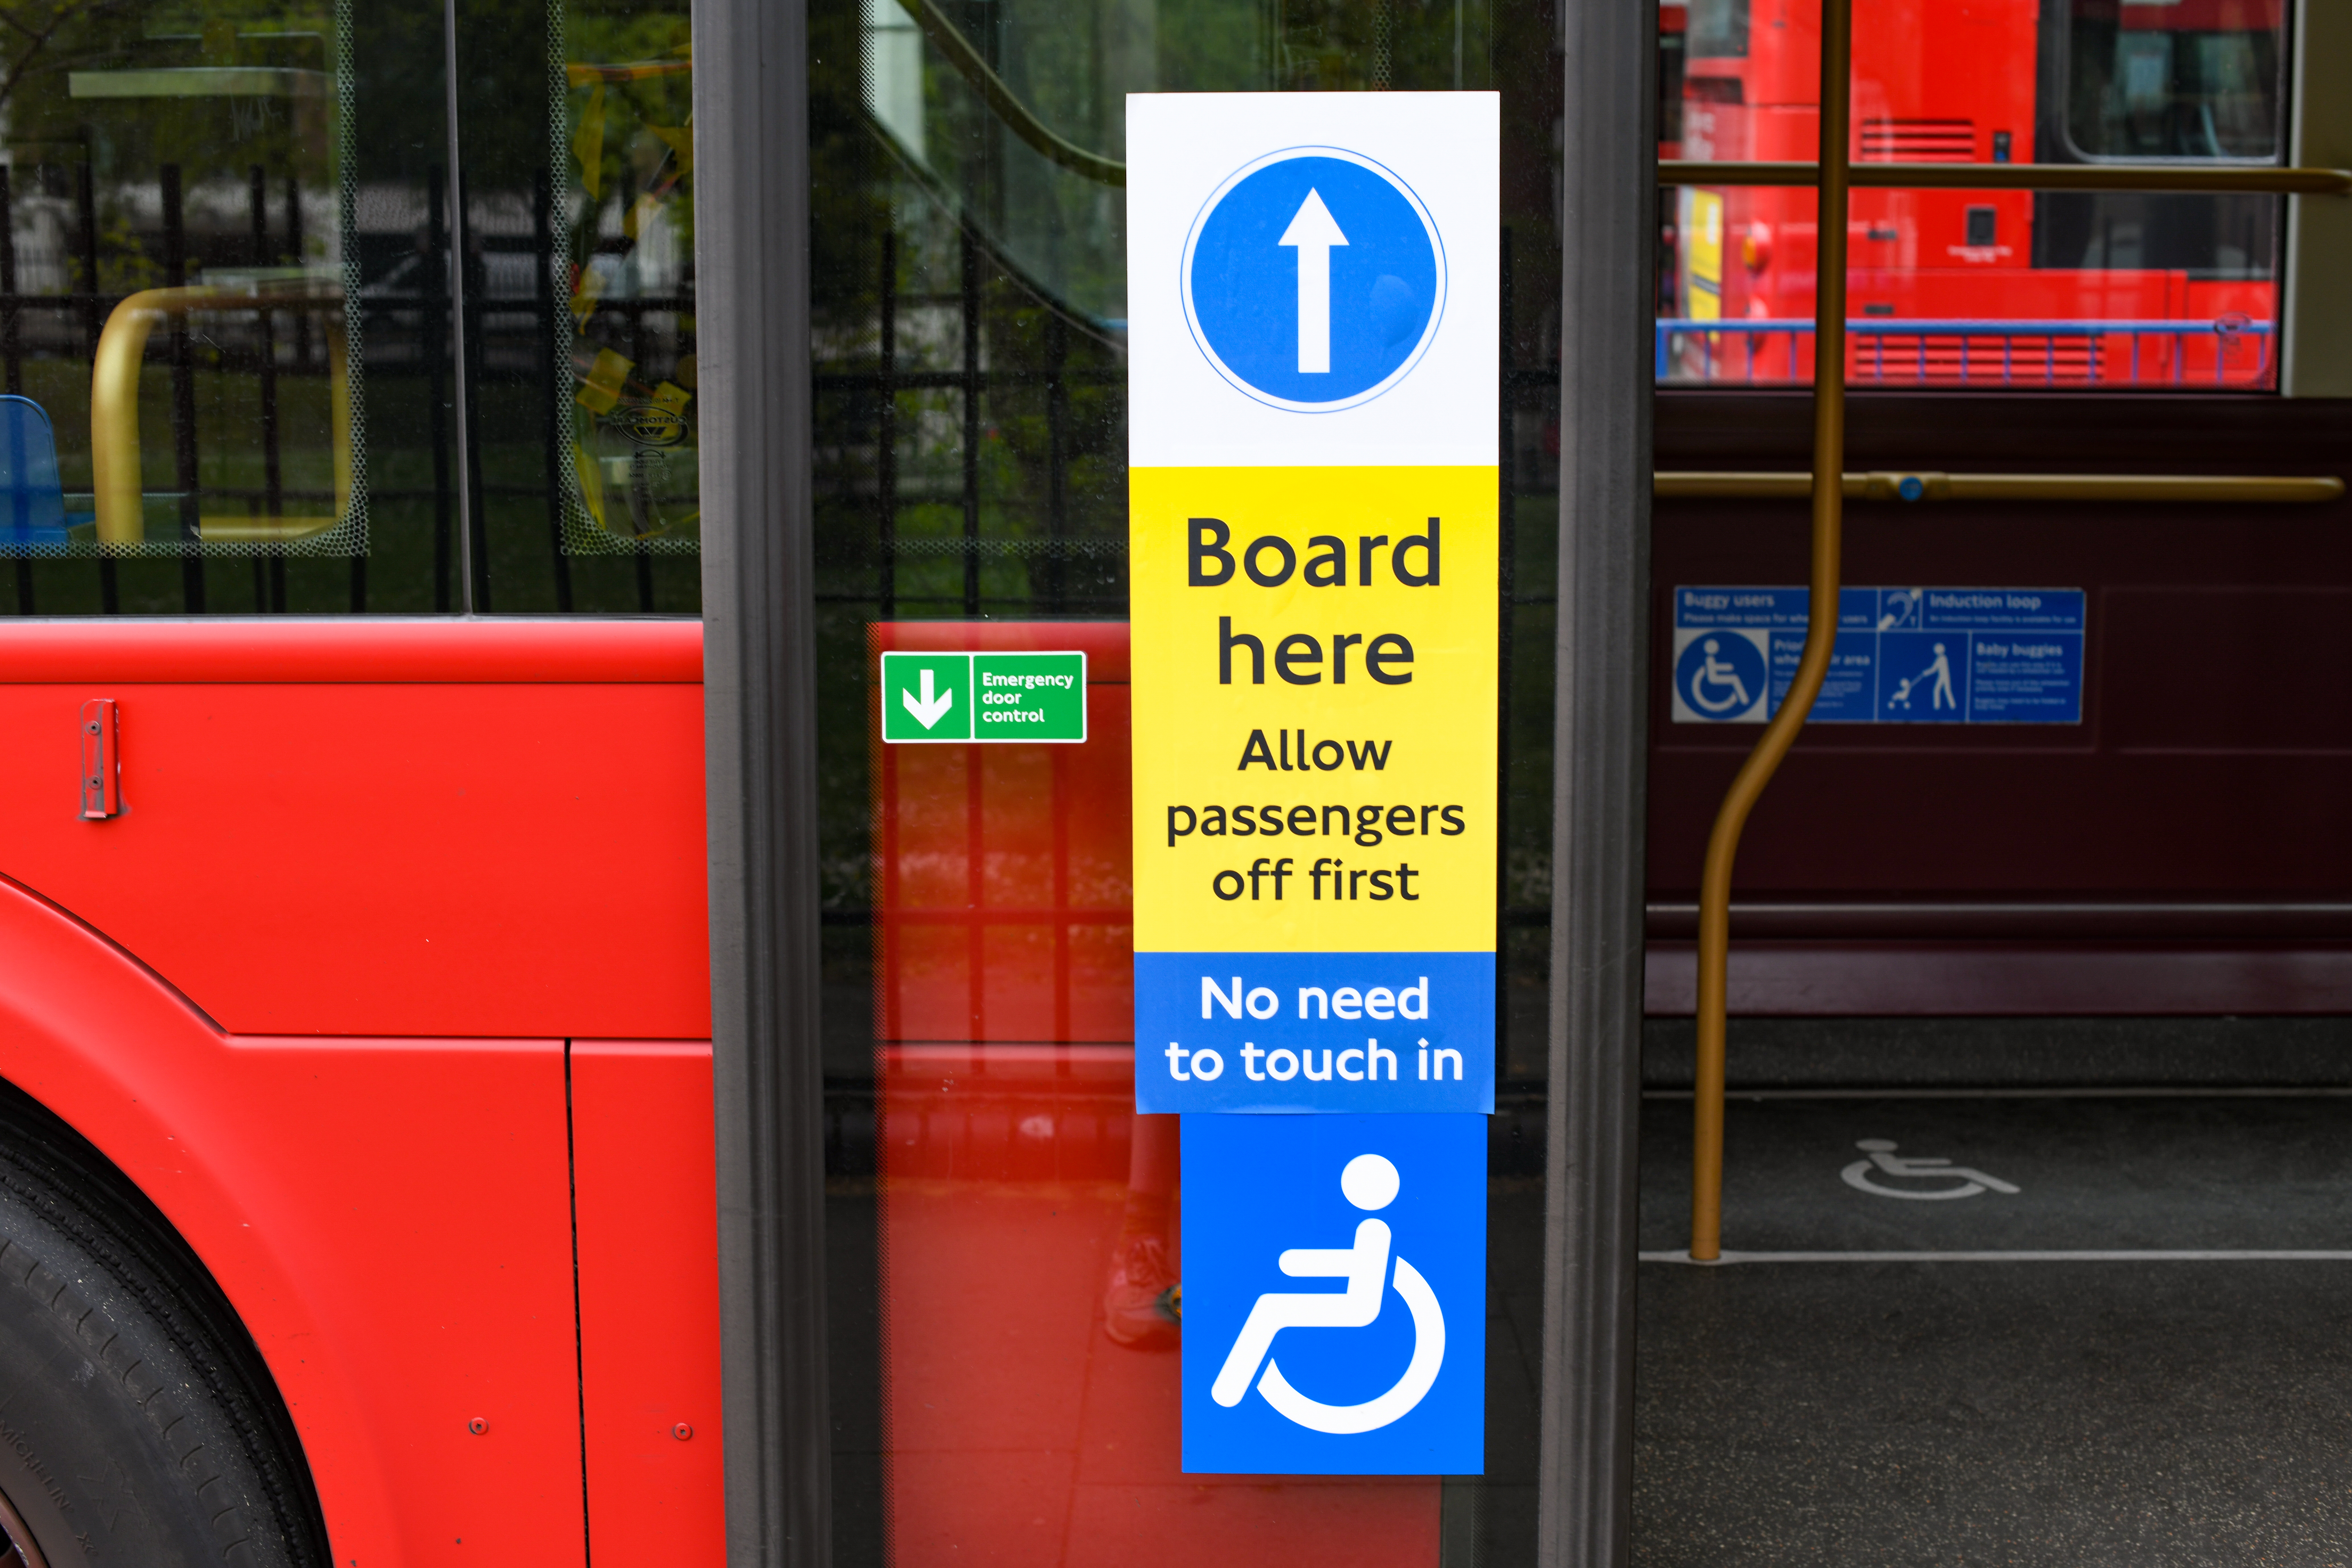 LTZ1781 LT781 Abellio Middle-door boarding signs (Euston) 4-20 (TfL)